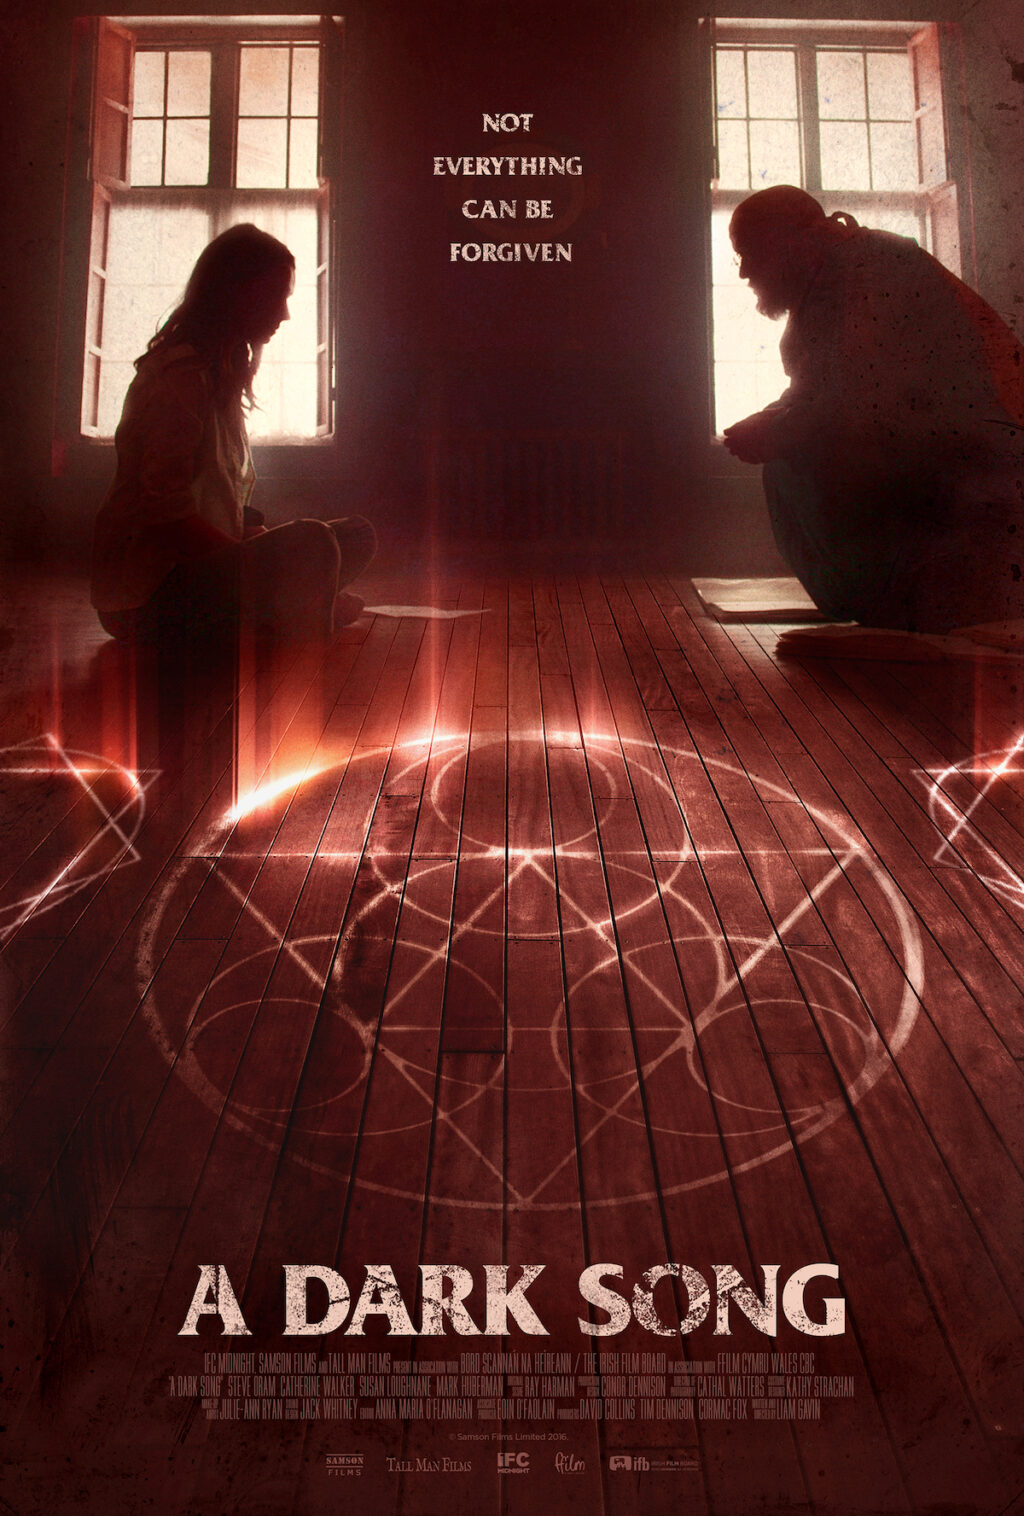 adarksongposter 1024x1516 - New US Poster and Trailer for A Dark Song Proves There Are Limits to Everything